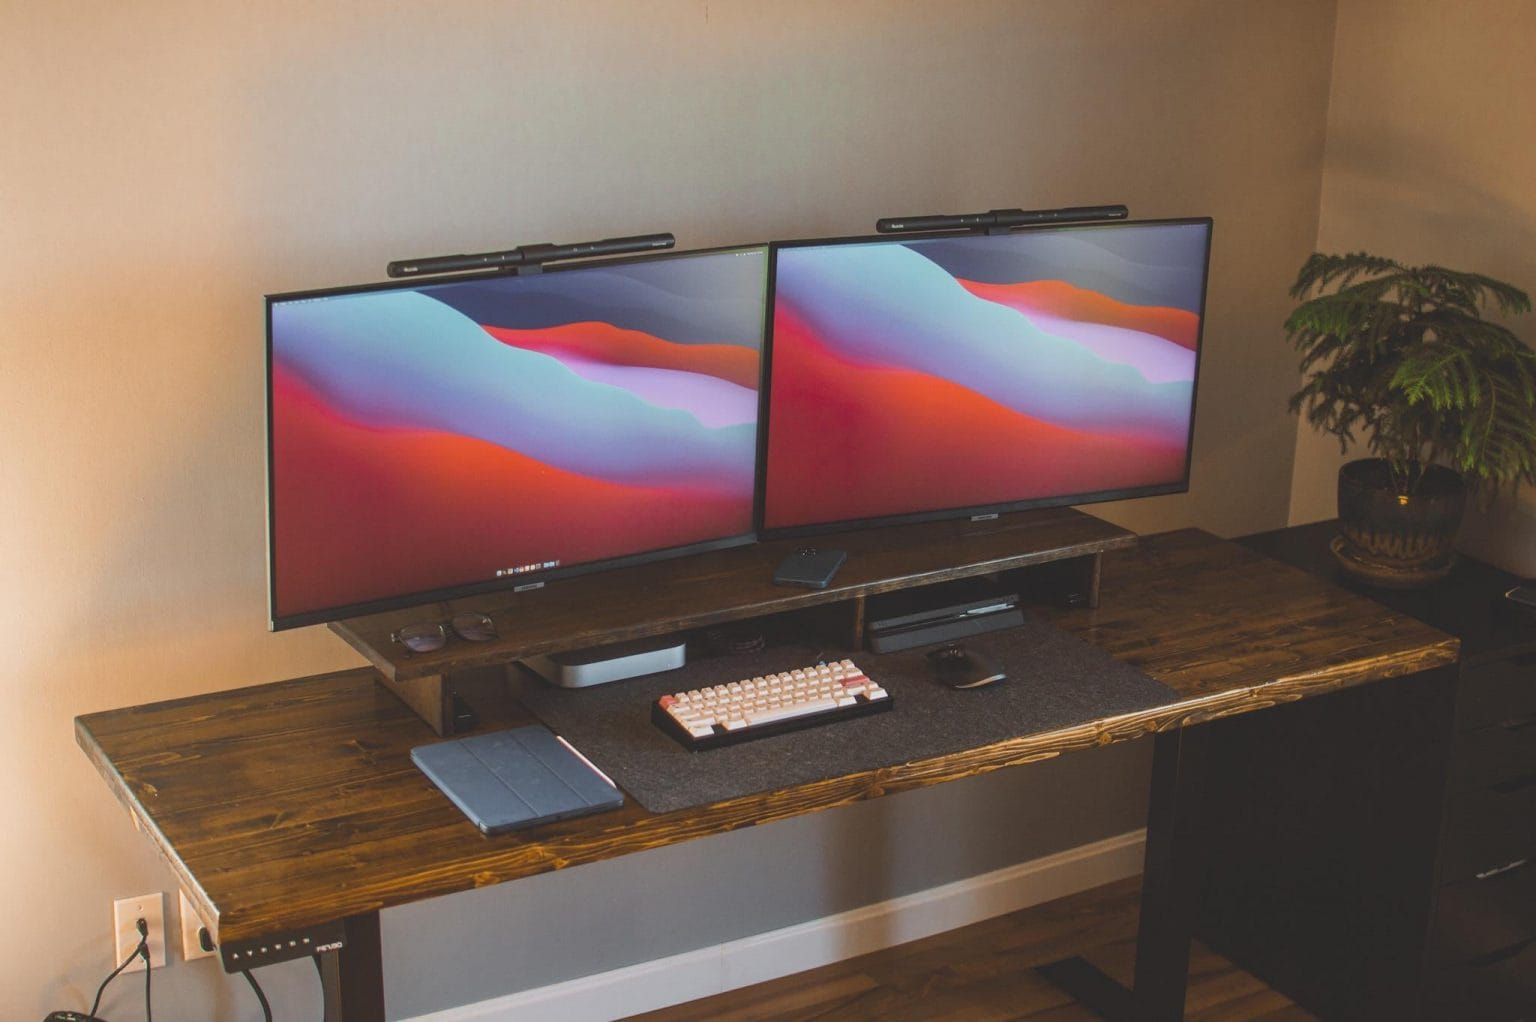 Two smart monitors with matching light bars easily run off a Mac mini M1.